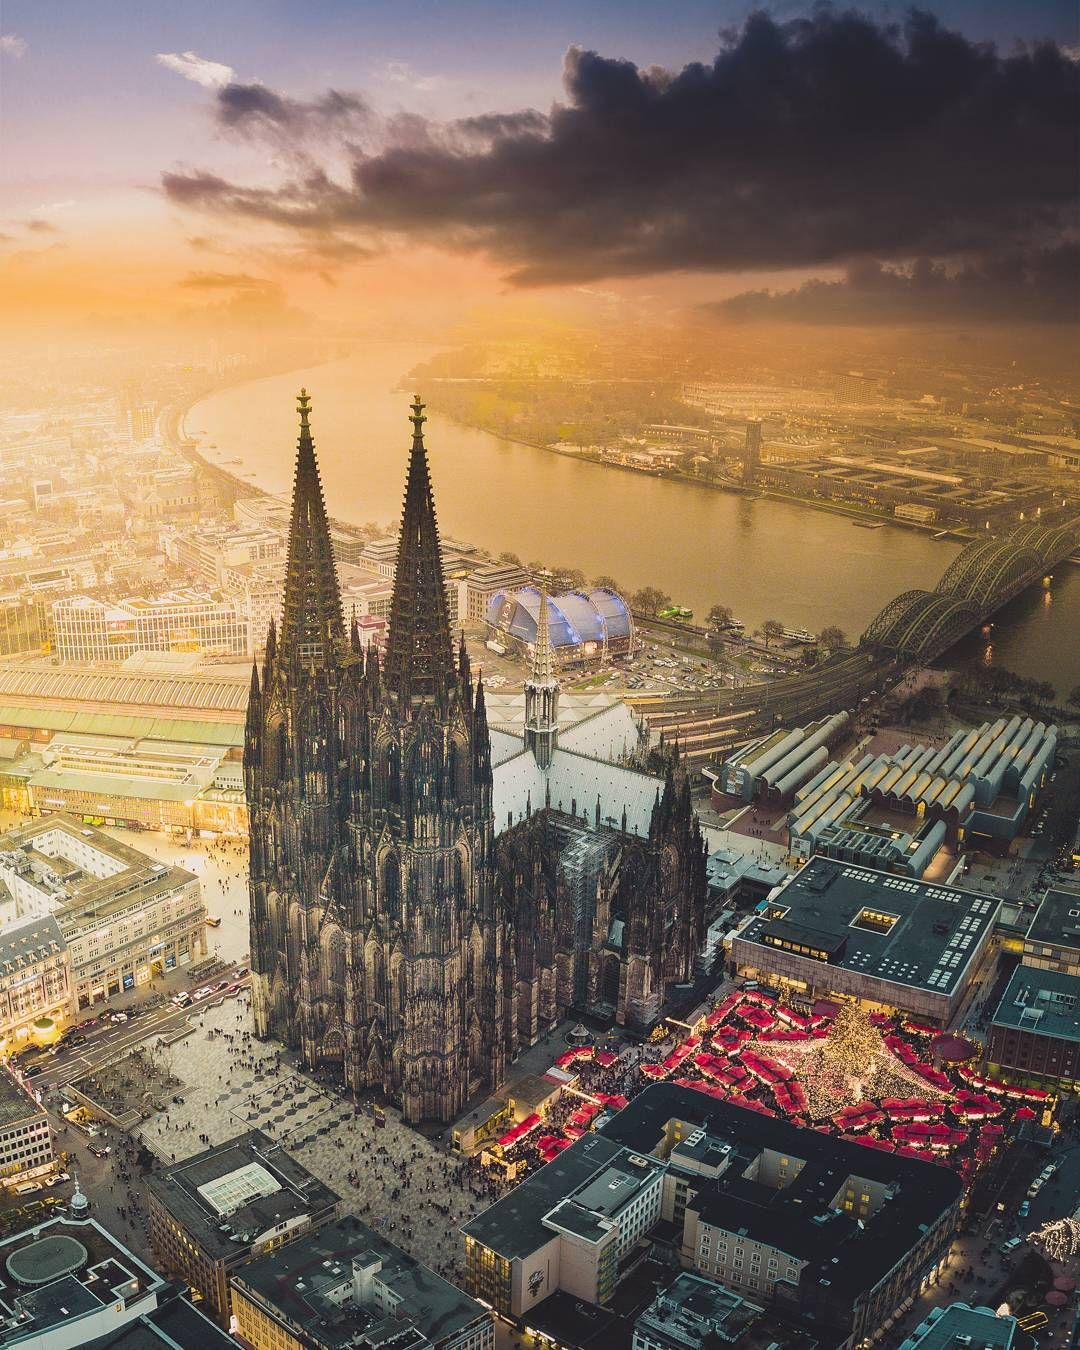 16 Of The Most Instagrammable Places In Germany Who To Follow